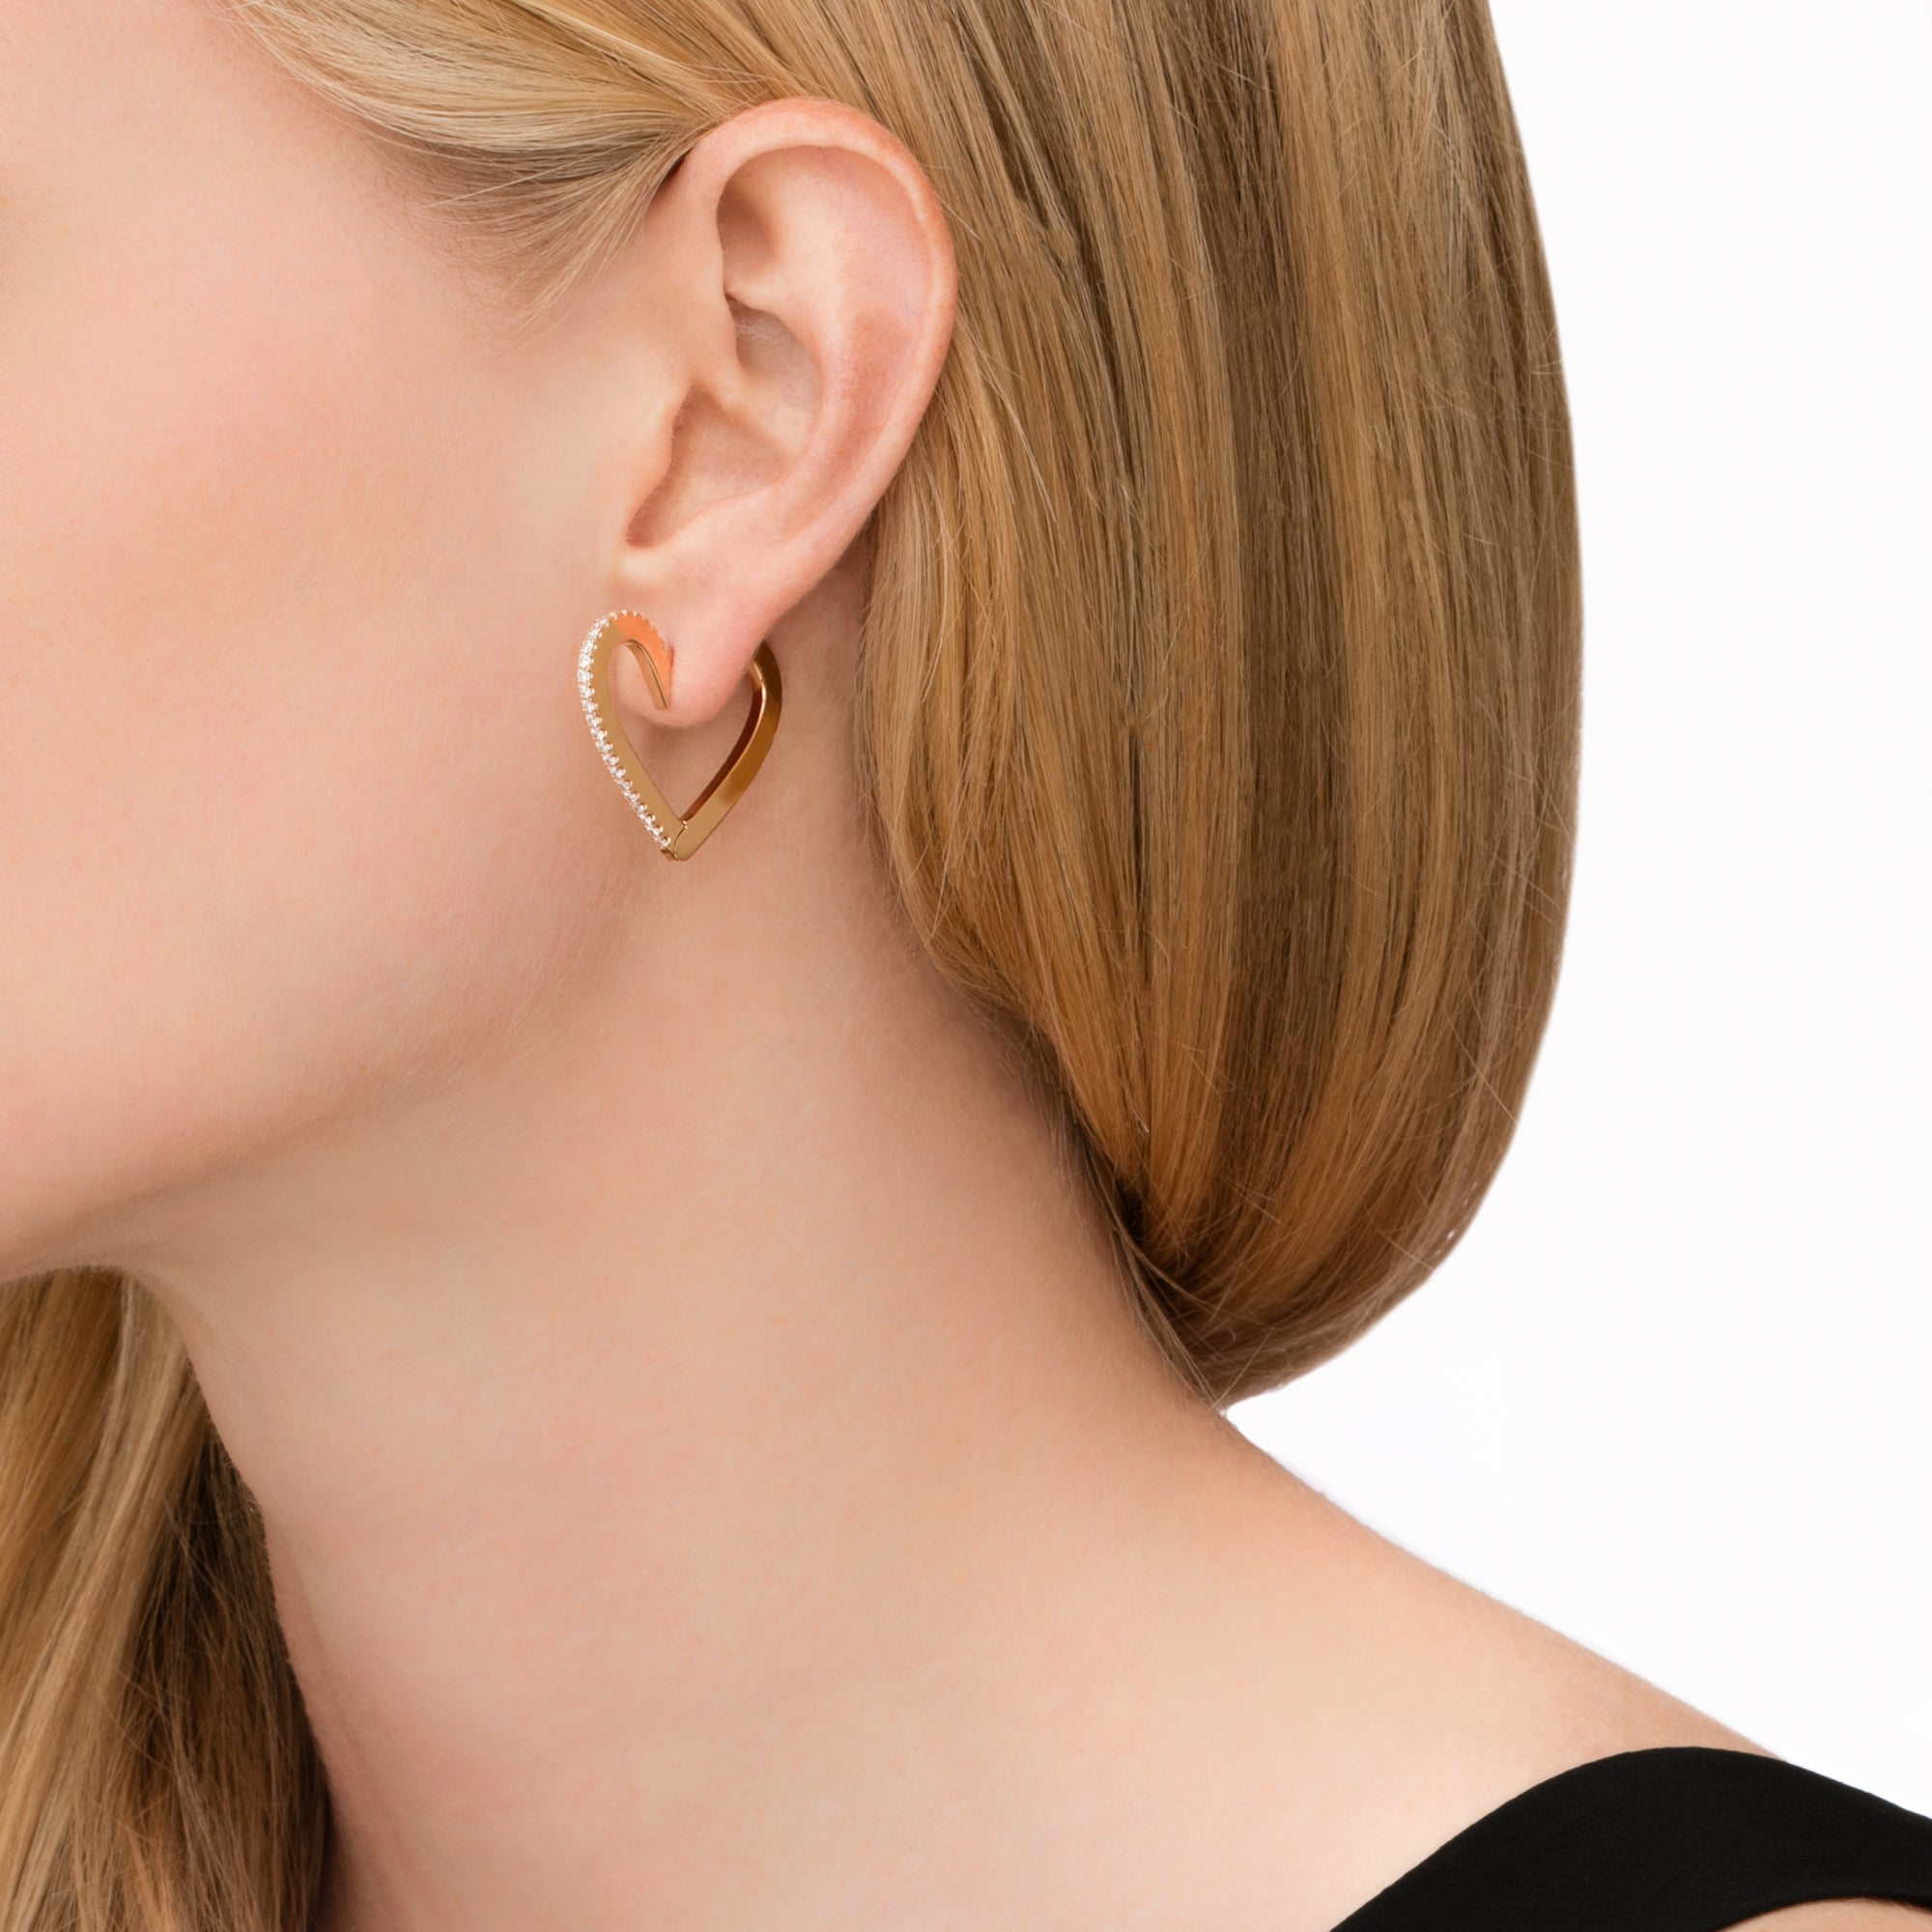 Medium Endless Hoop Earrings - Cadar - Earrings | Broken English Jewelry